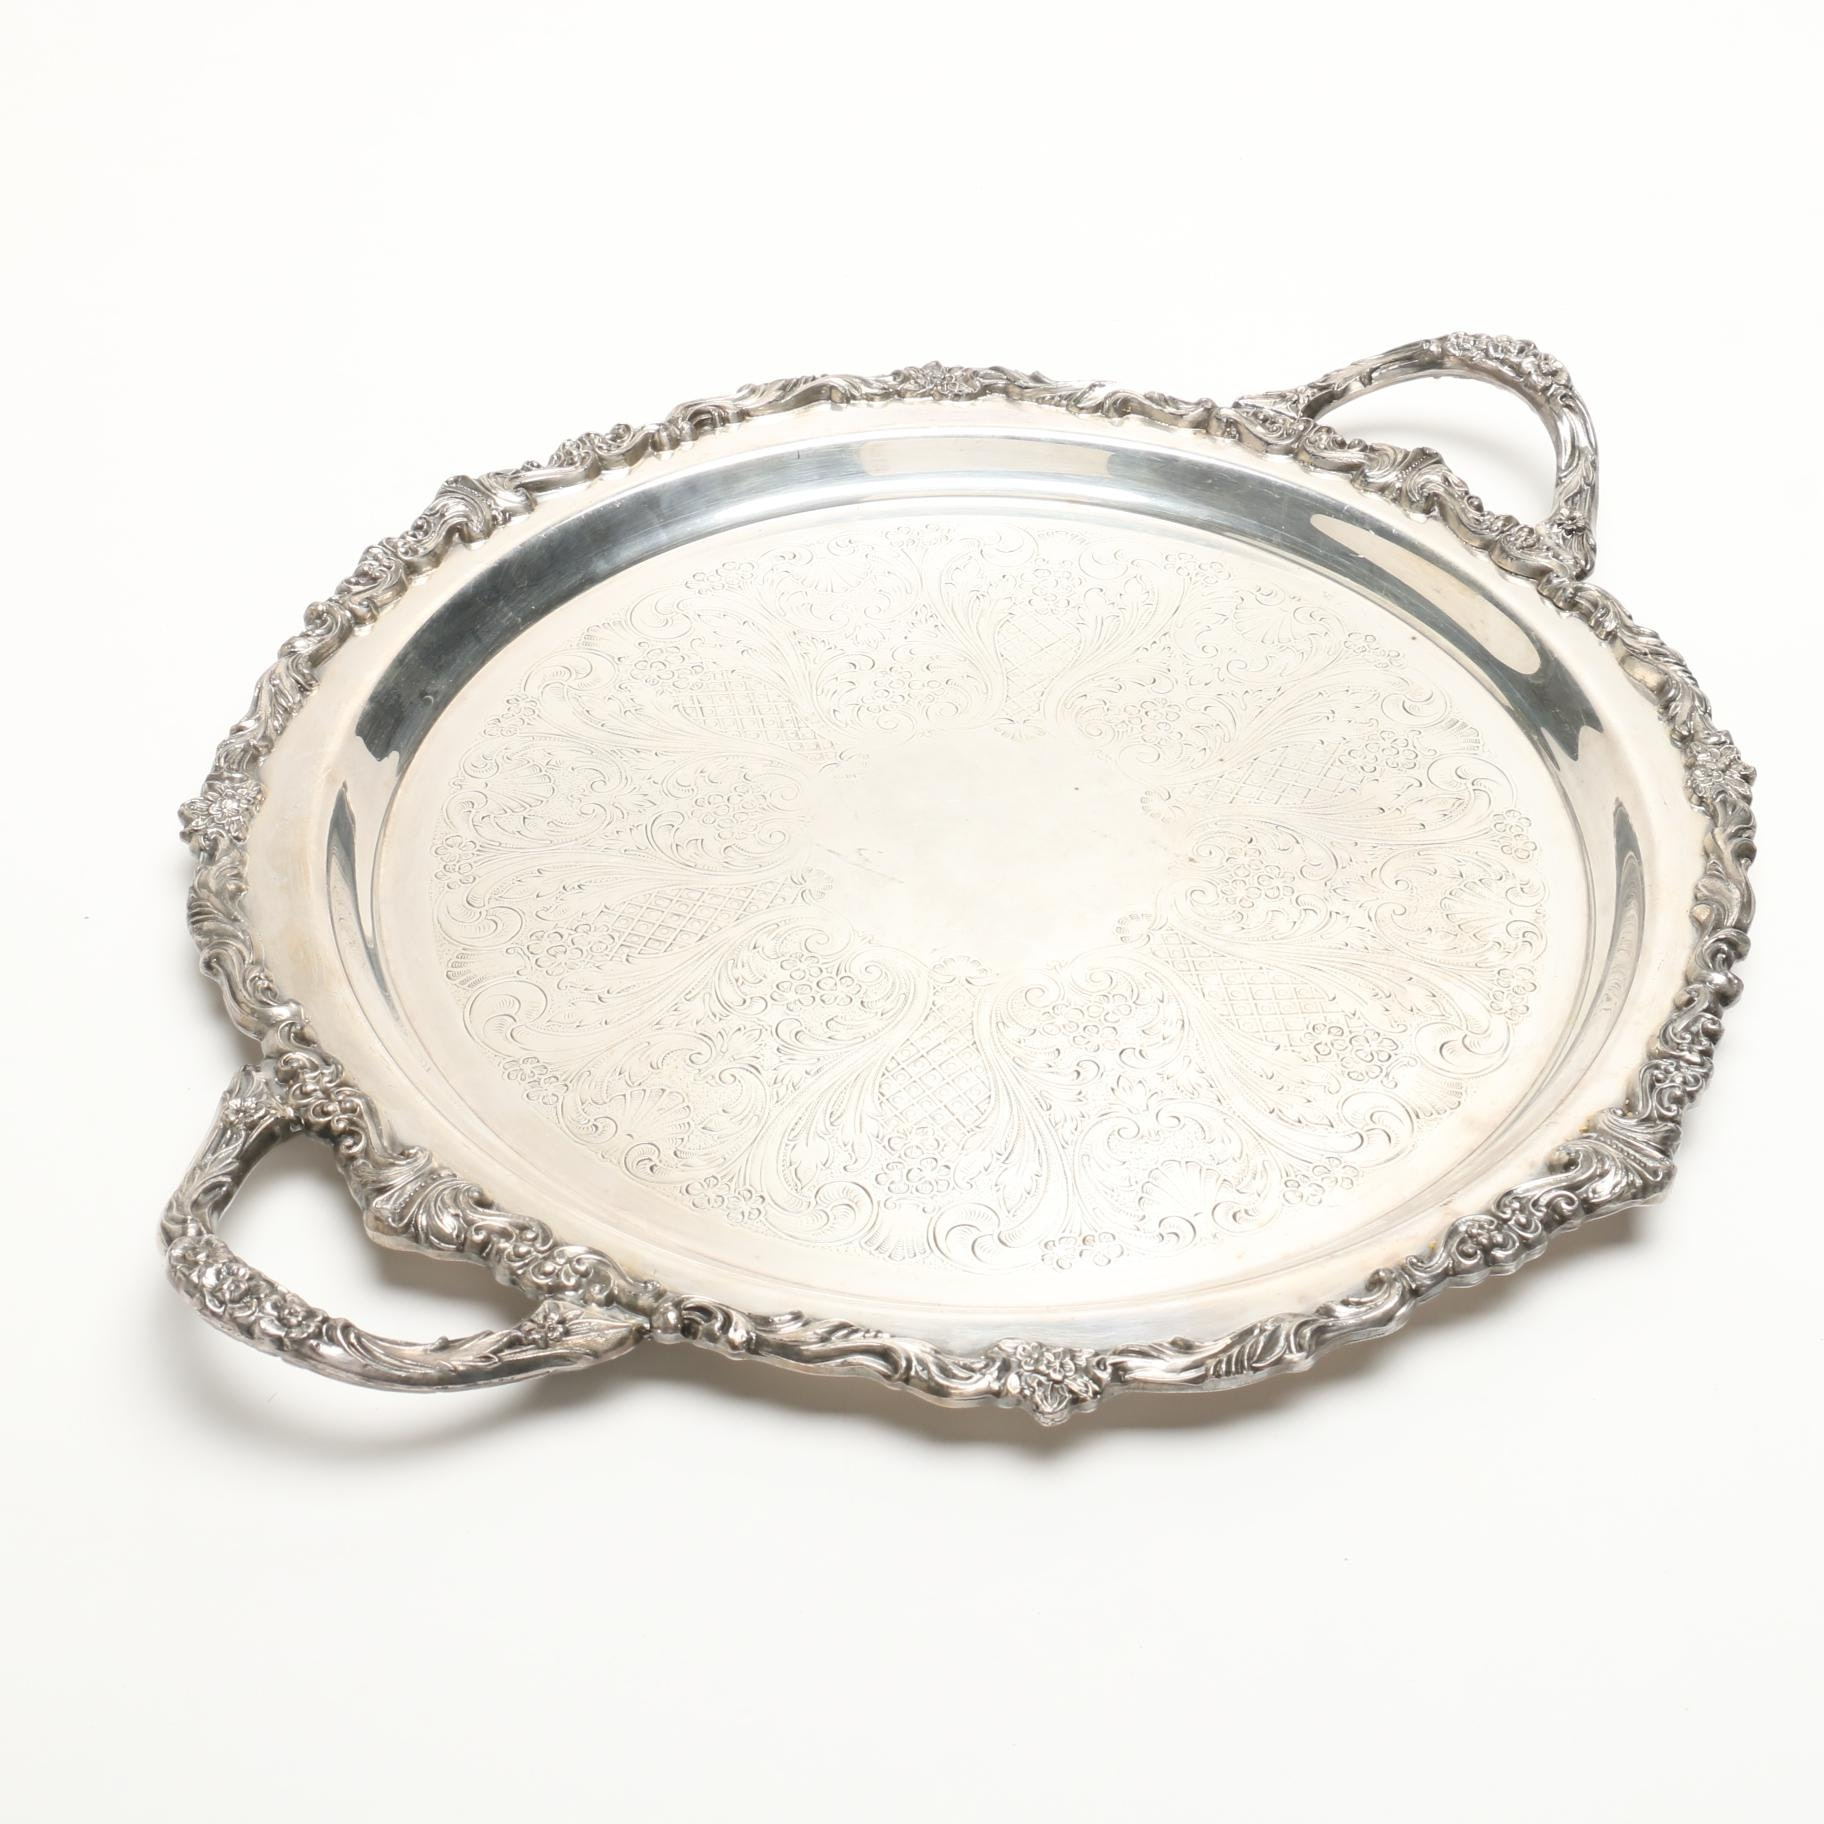 Sheridan Silver Plate Tray with Handles